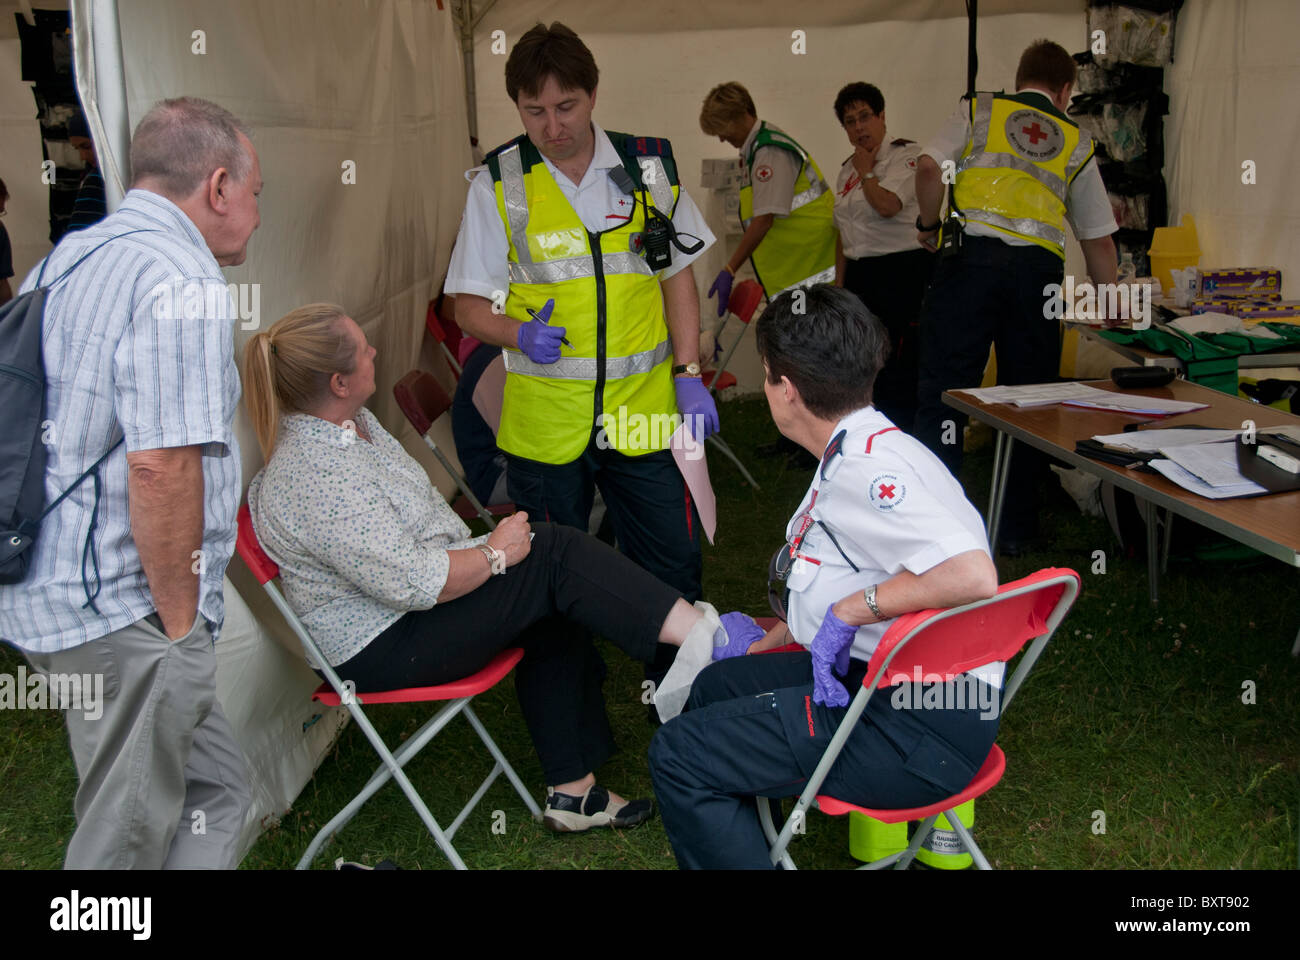 AMBULANCE STAFF  COMFORTING THE  UNWELL  PERSON IN THE TENT - Stock Image